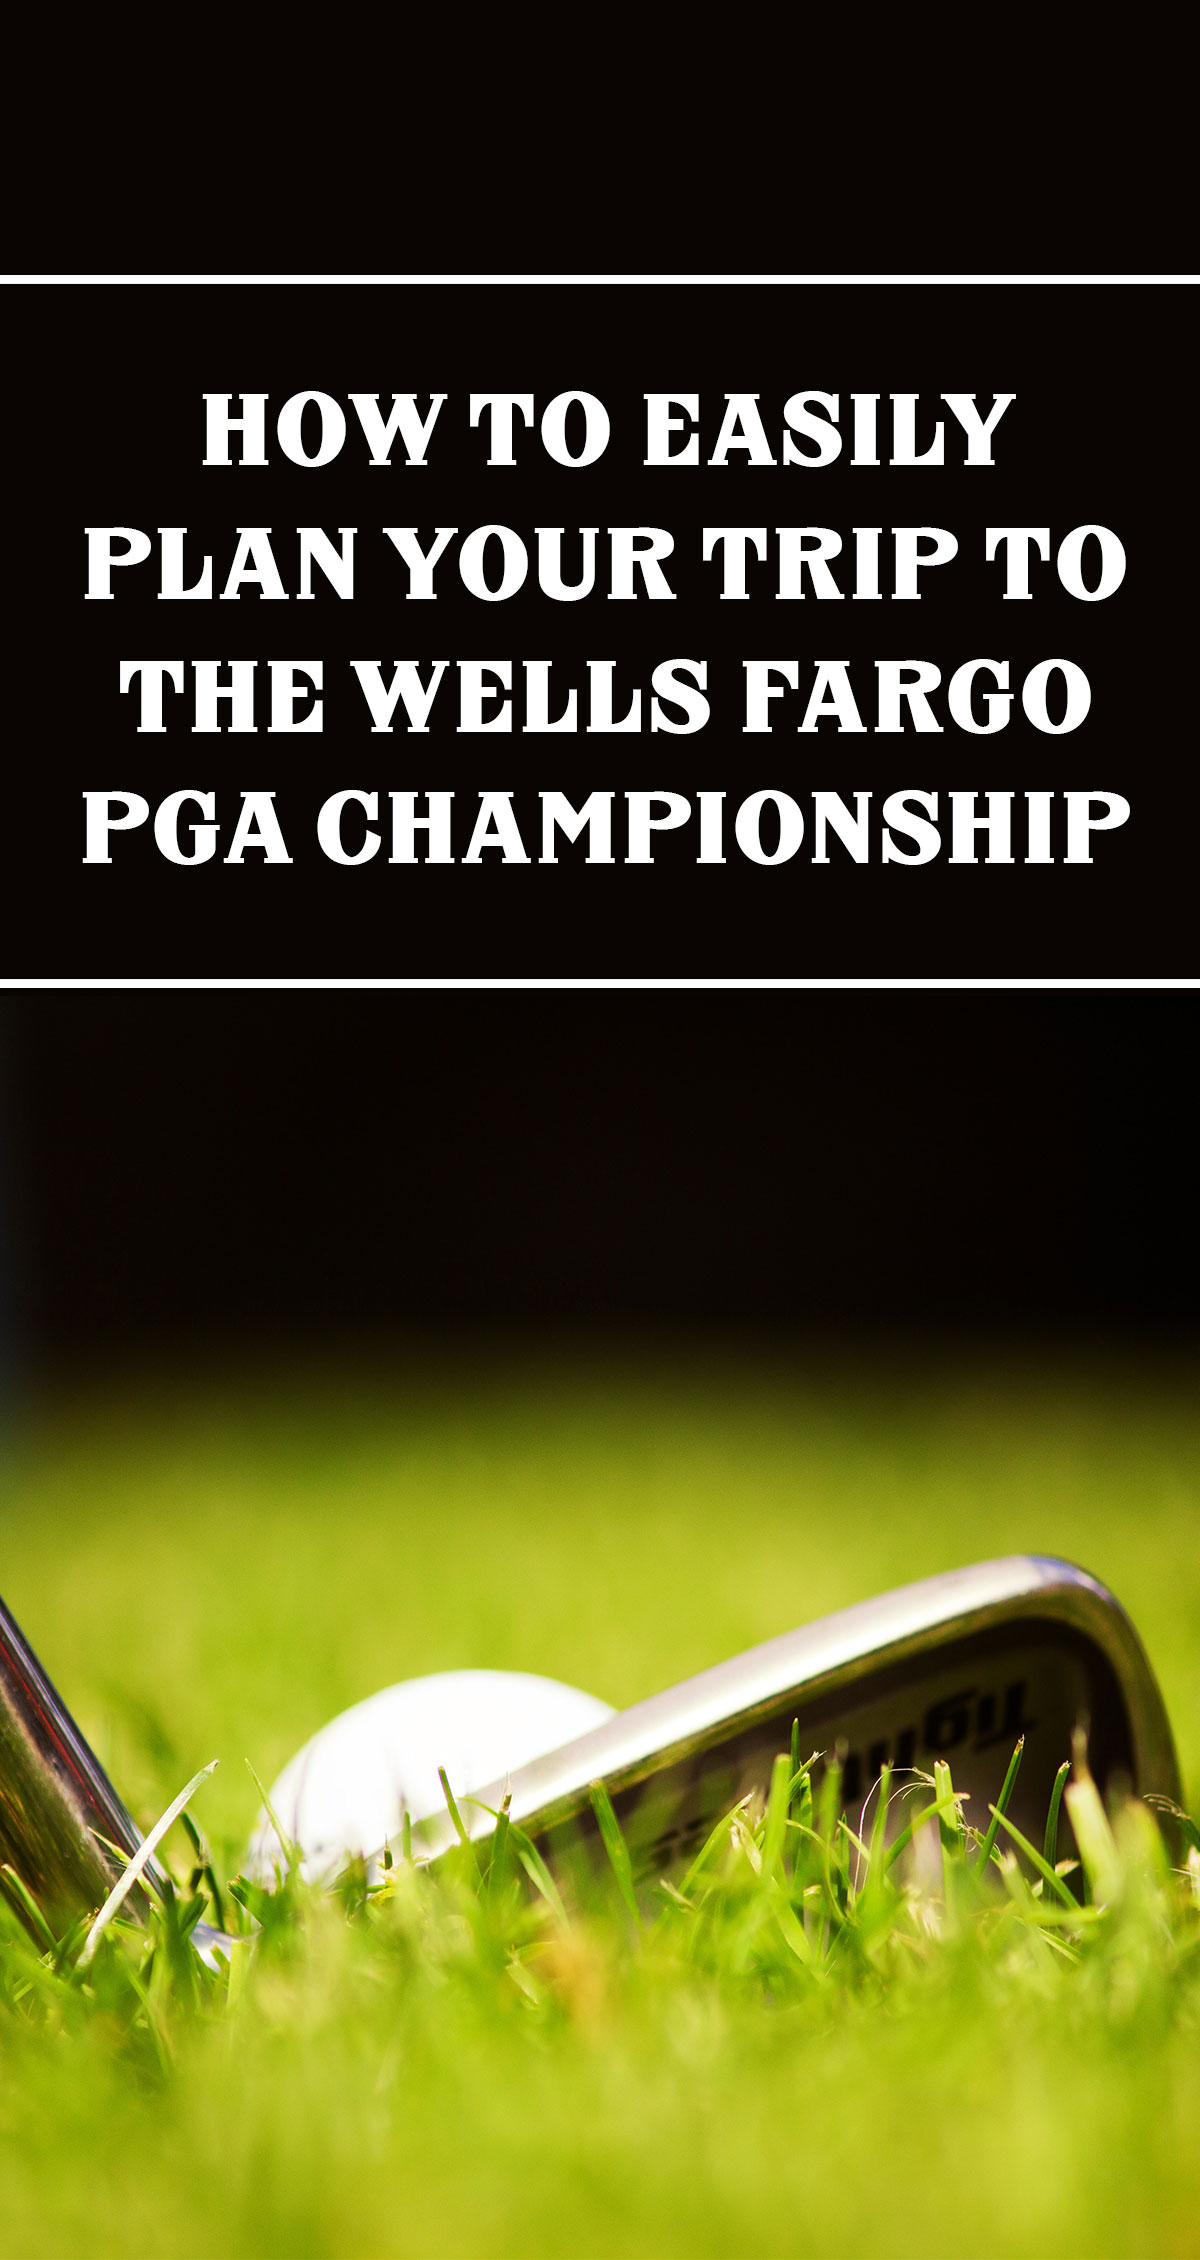 How to Easily Plan Your Trip to the Wells Fargo PGA Championship Pin